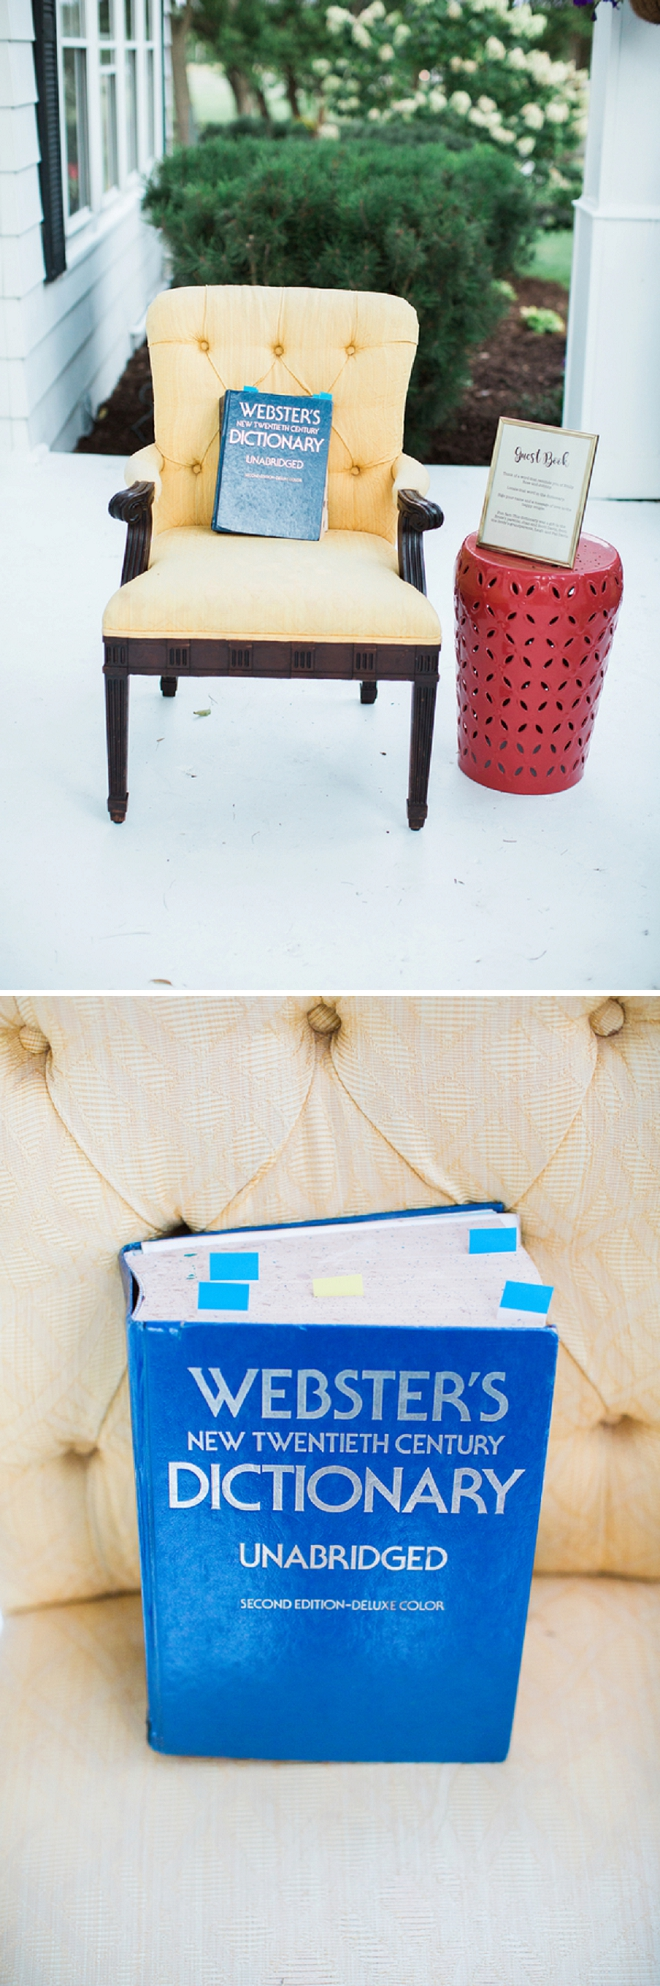 OMG! How darling is this dictionary guest book idea?! So cute and original!